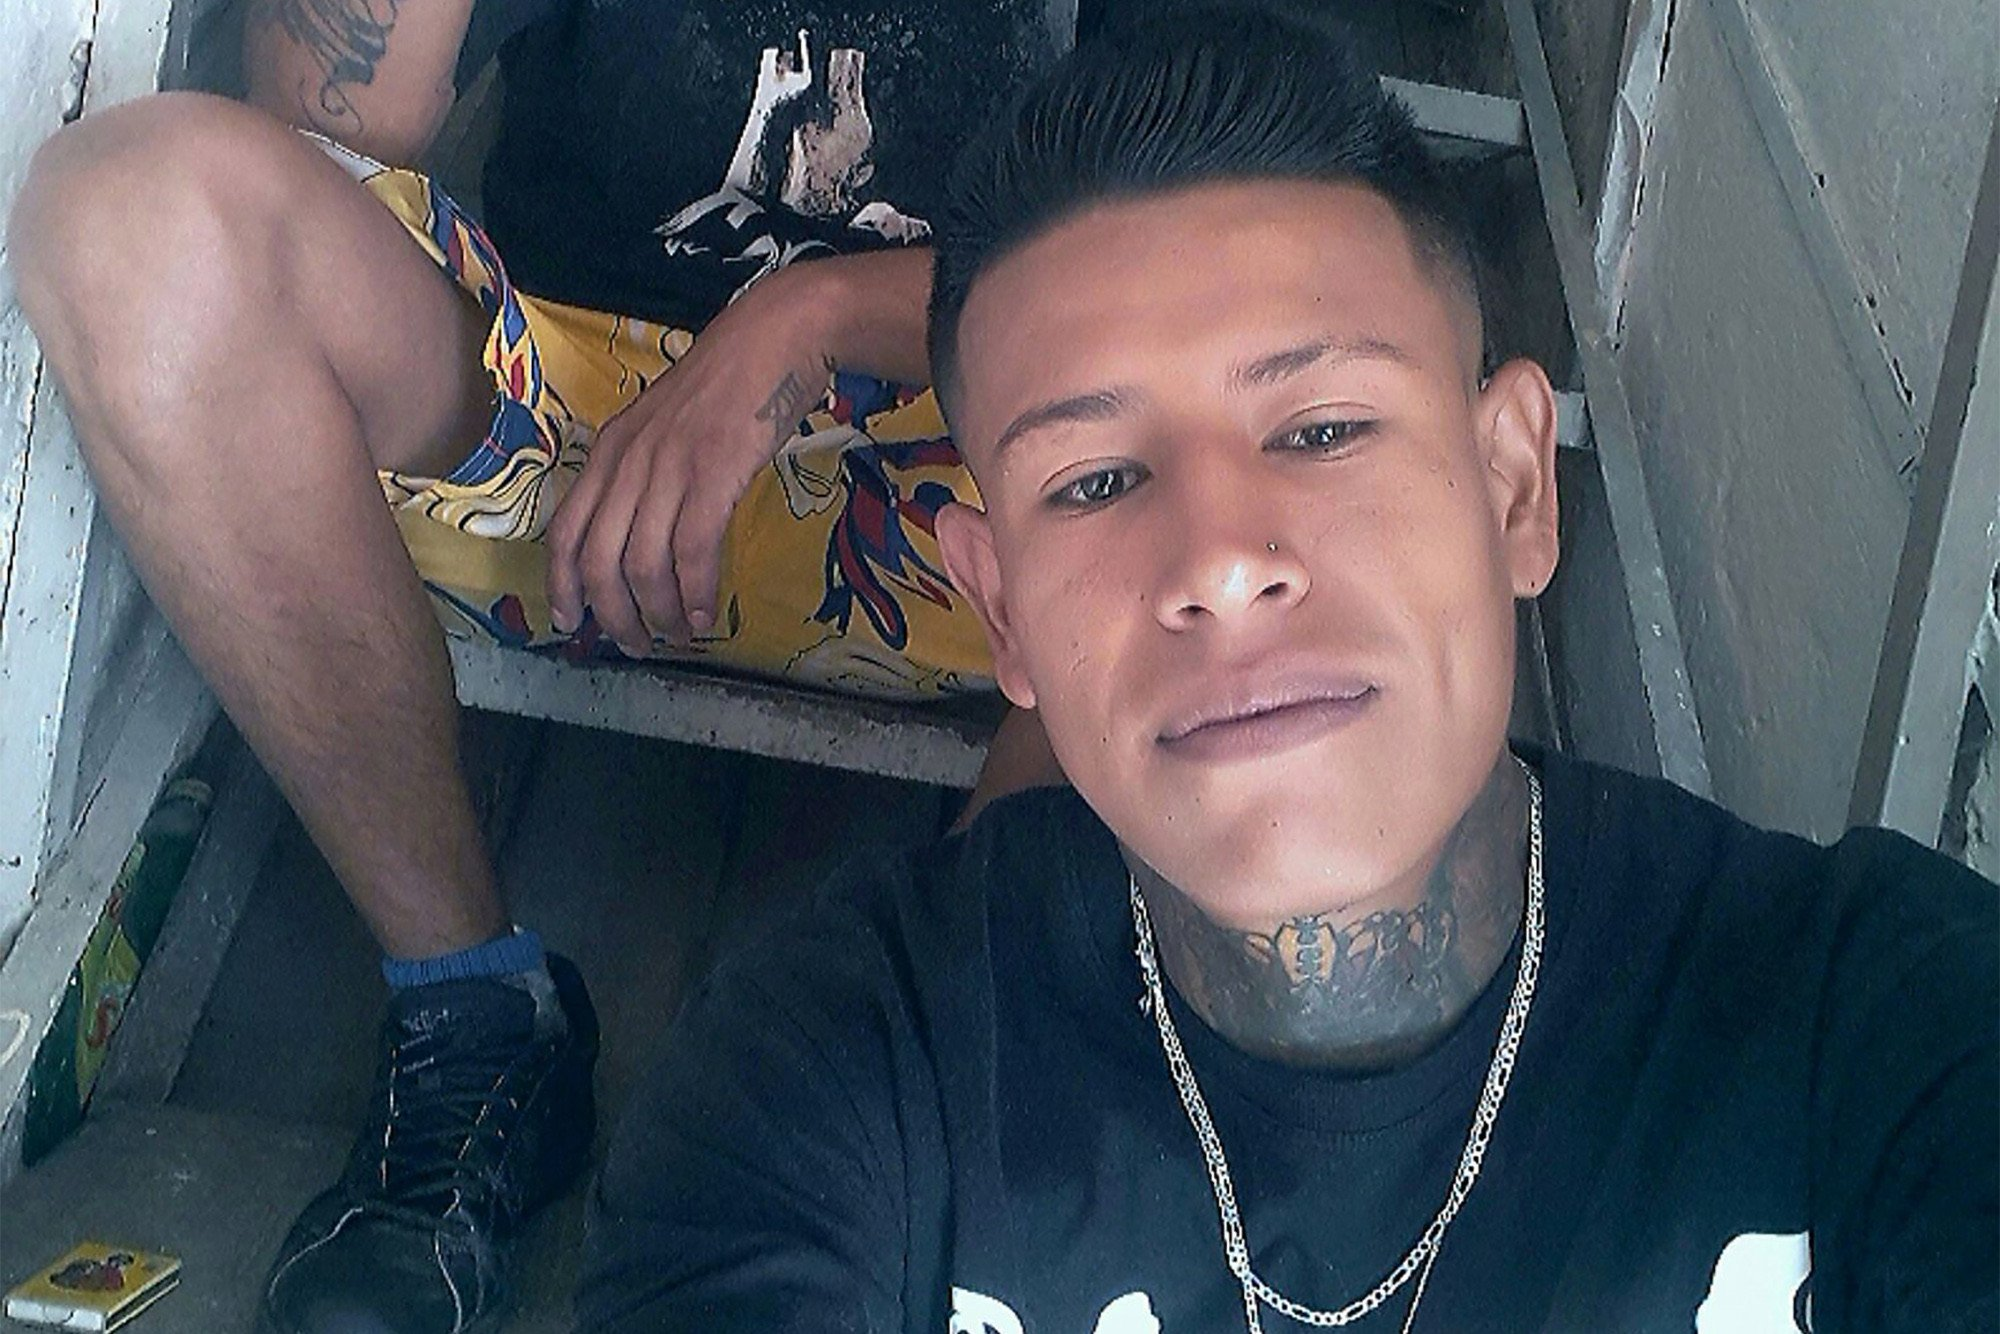 Mexican rapper admits to dissolving students' bodies in acid